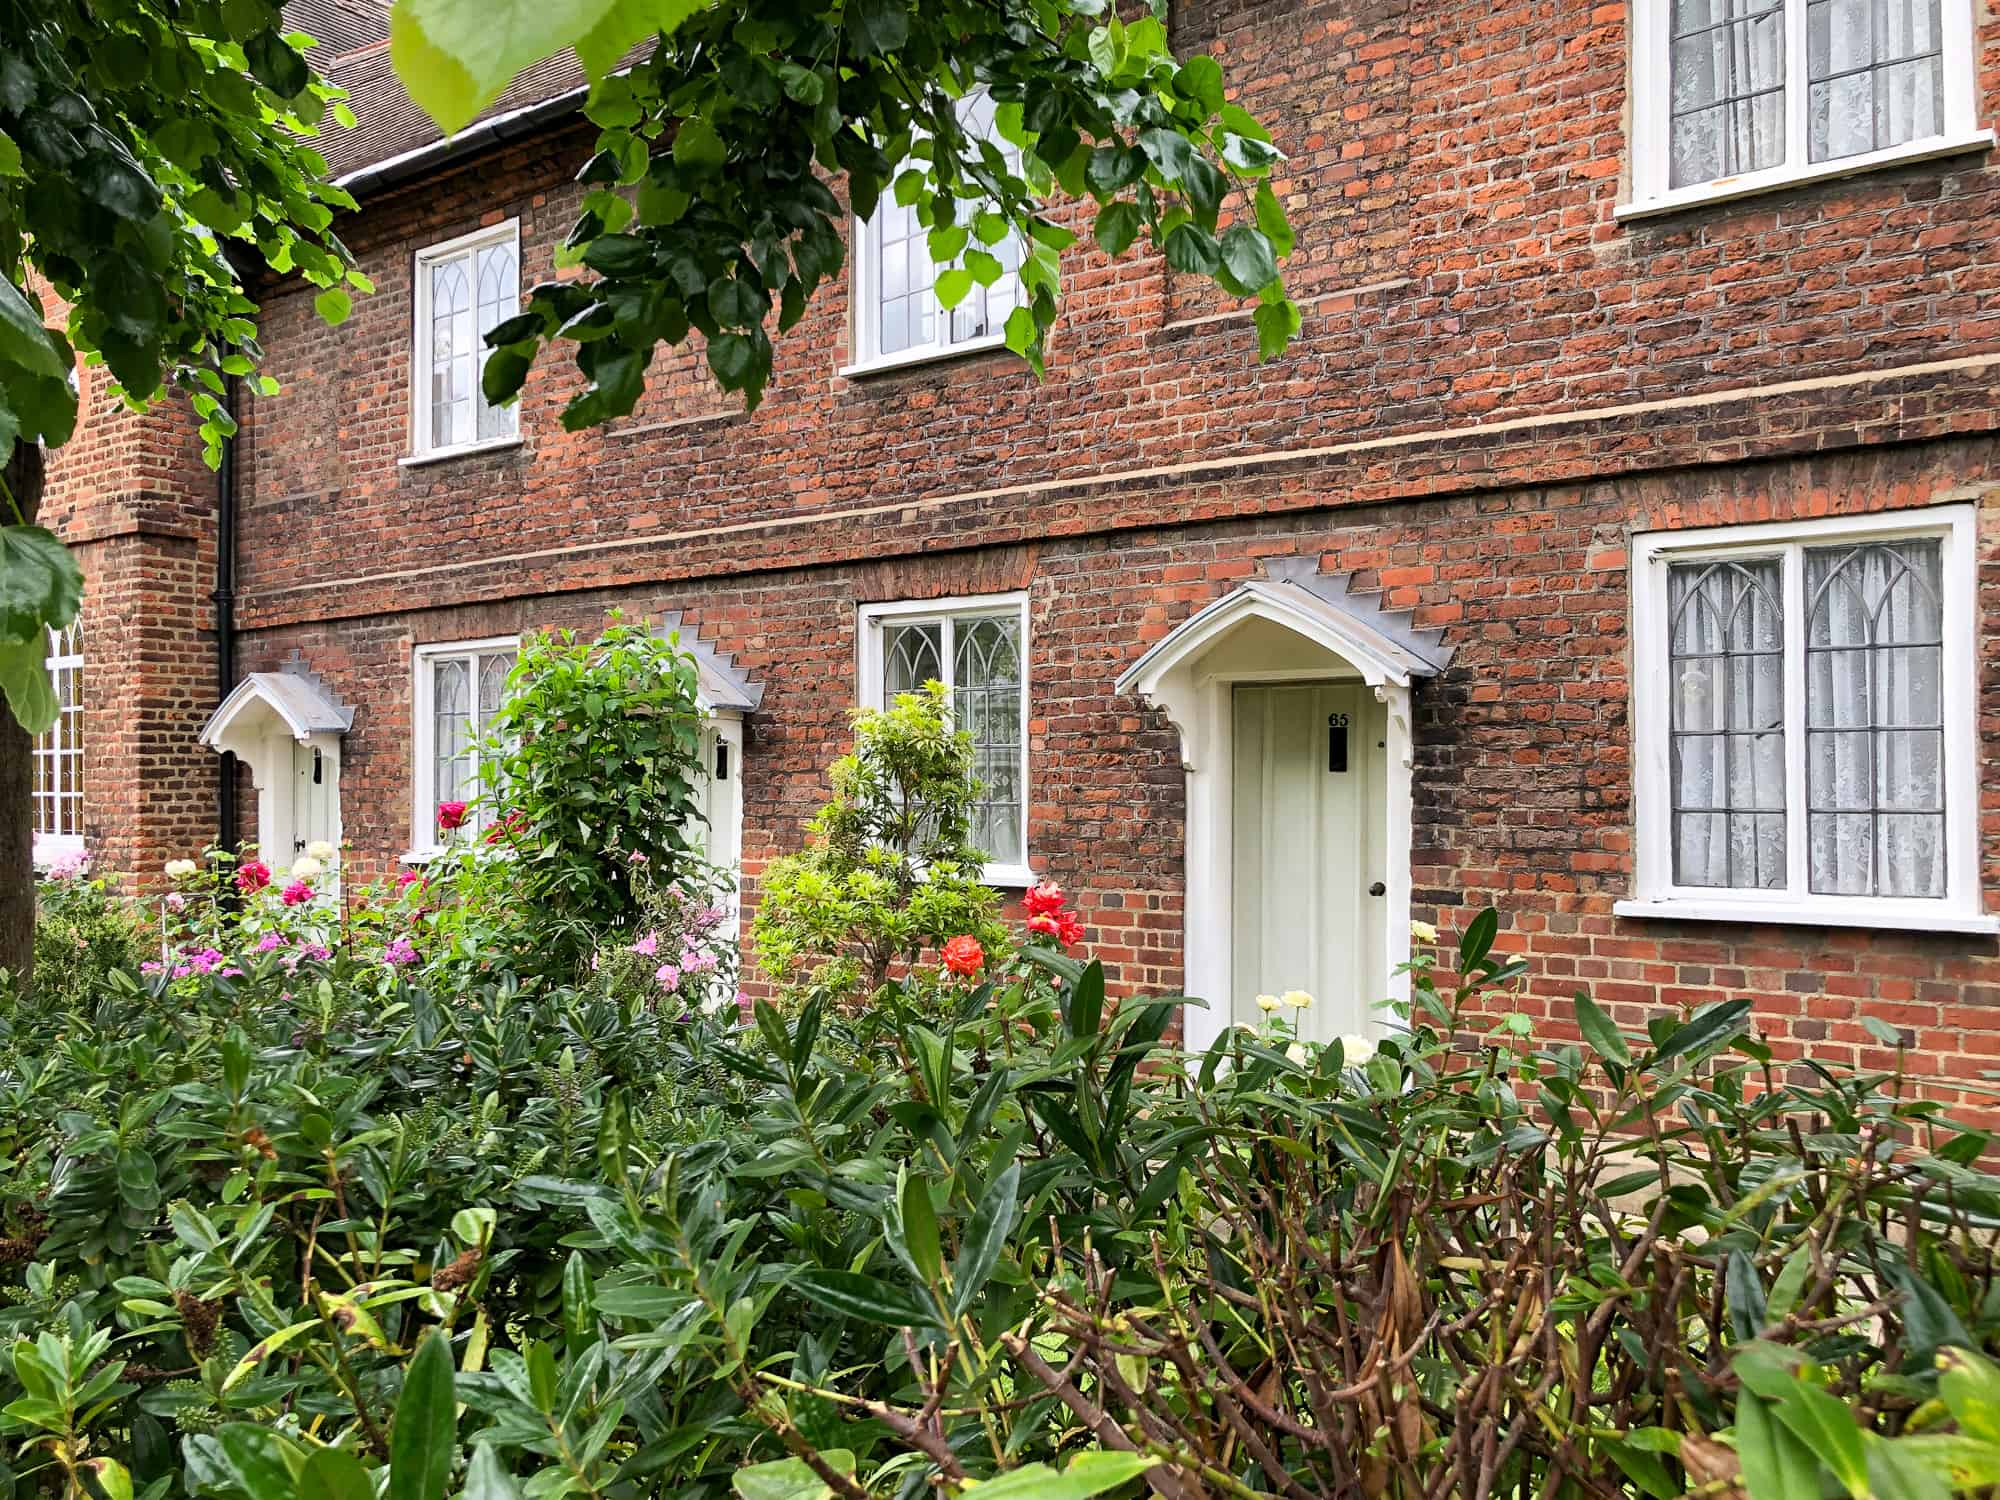 England - Kingston upon Thames - red brick house with leaves